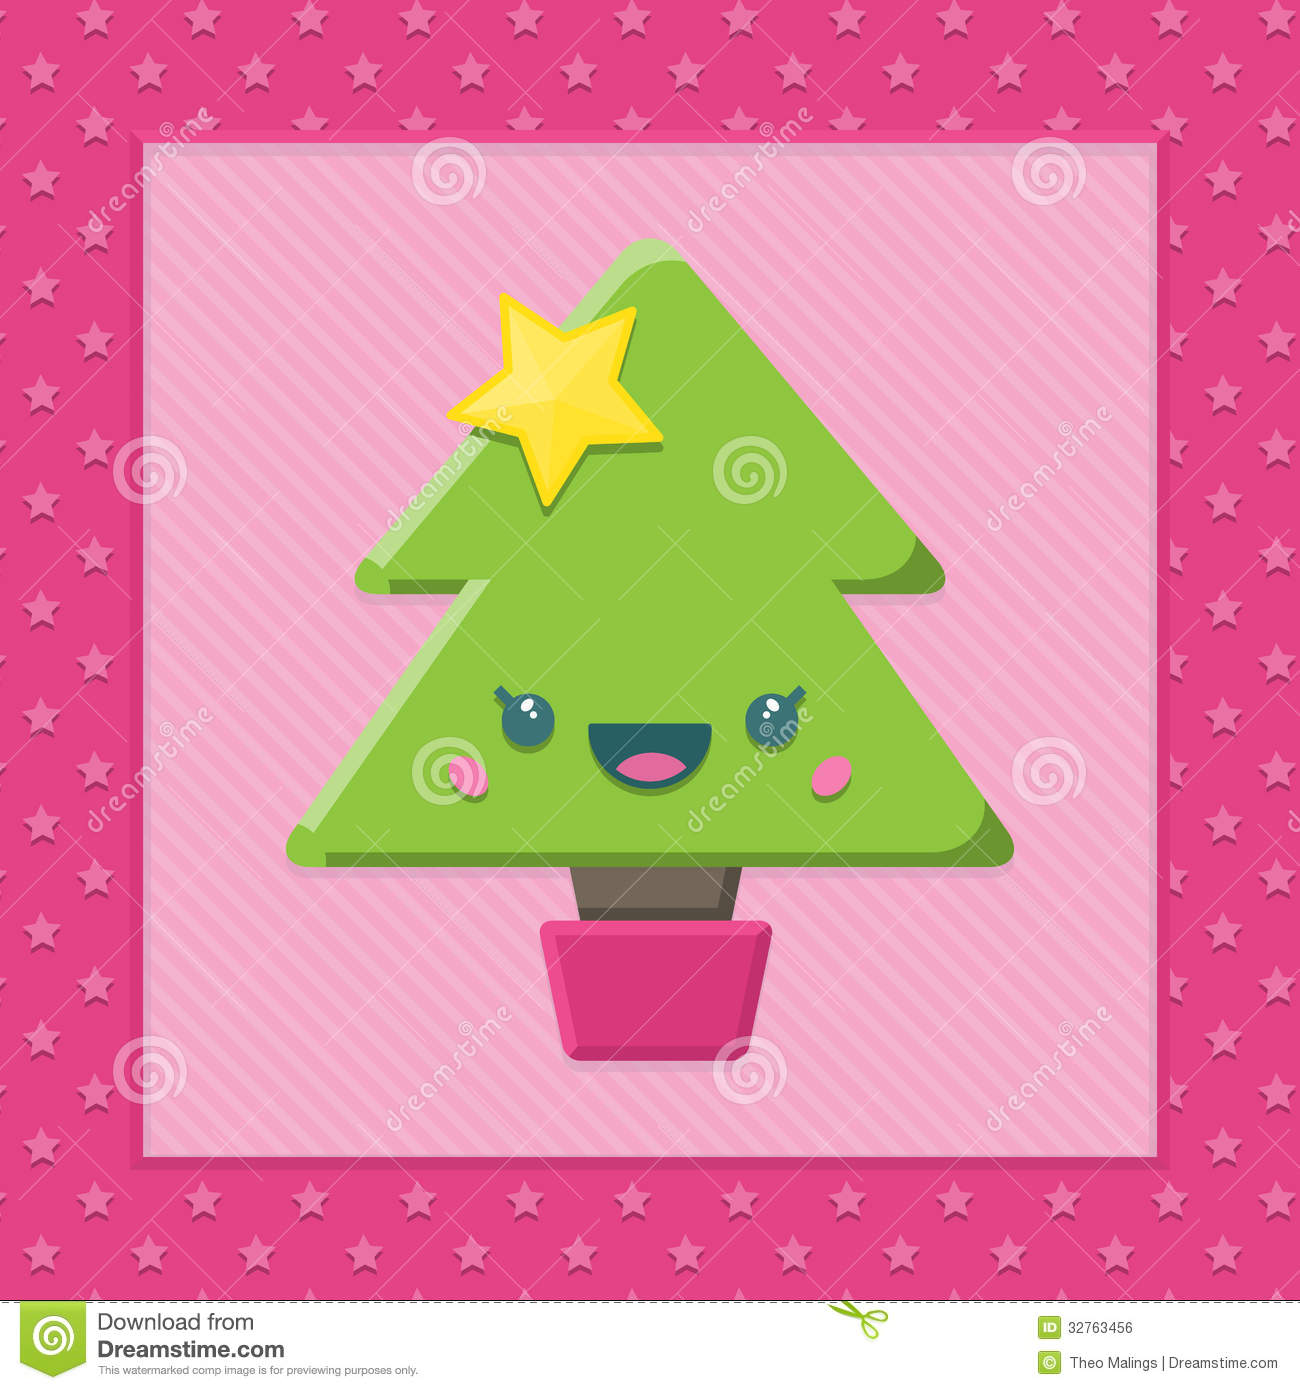 Cartoon Kawaii Christmas Tree Stock Vector - Illustration of ...